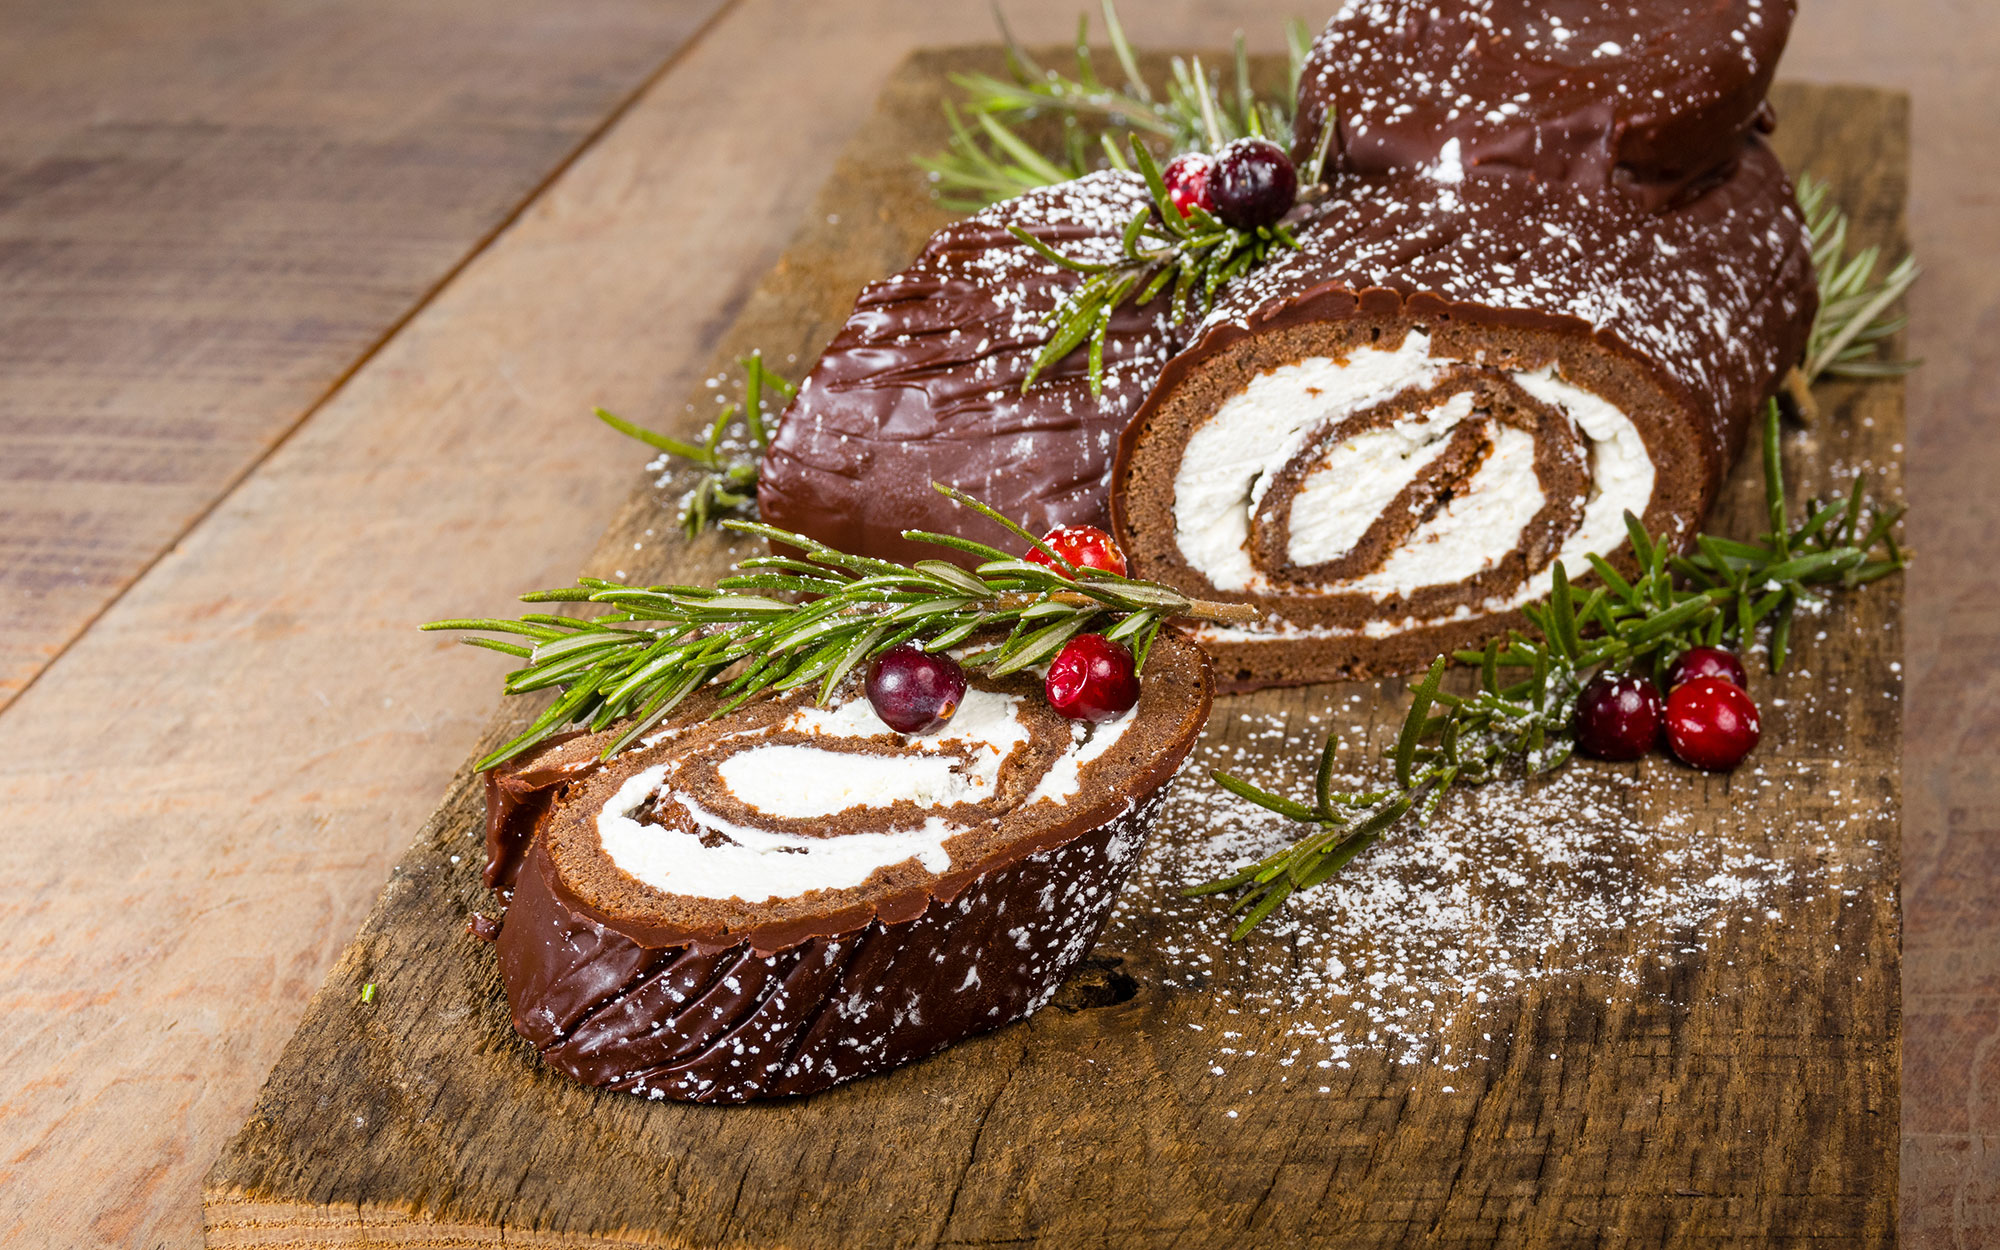 Food faith amp design thanksgiving goodies - Chocolate Yule Log With Cranberries